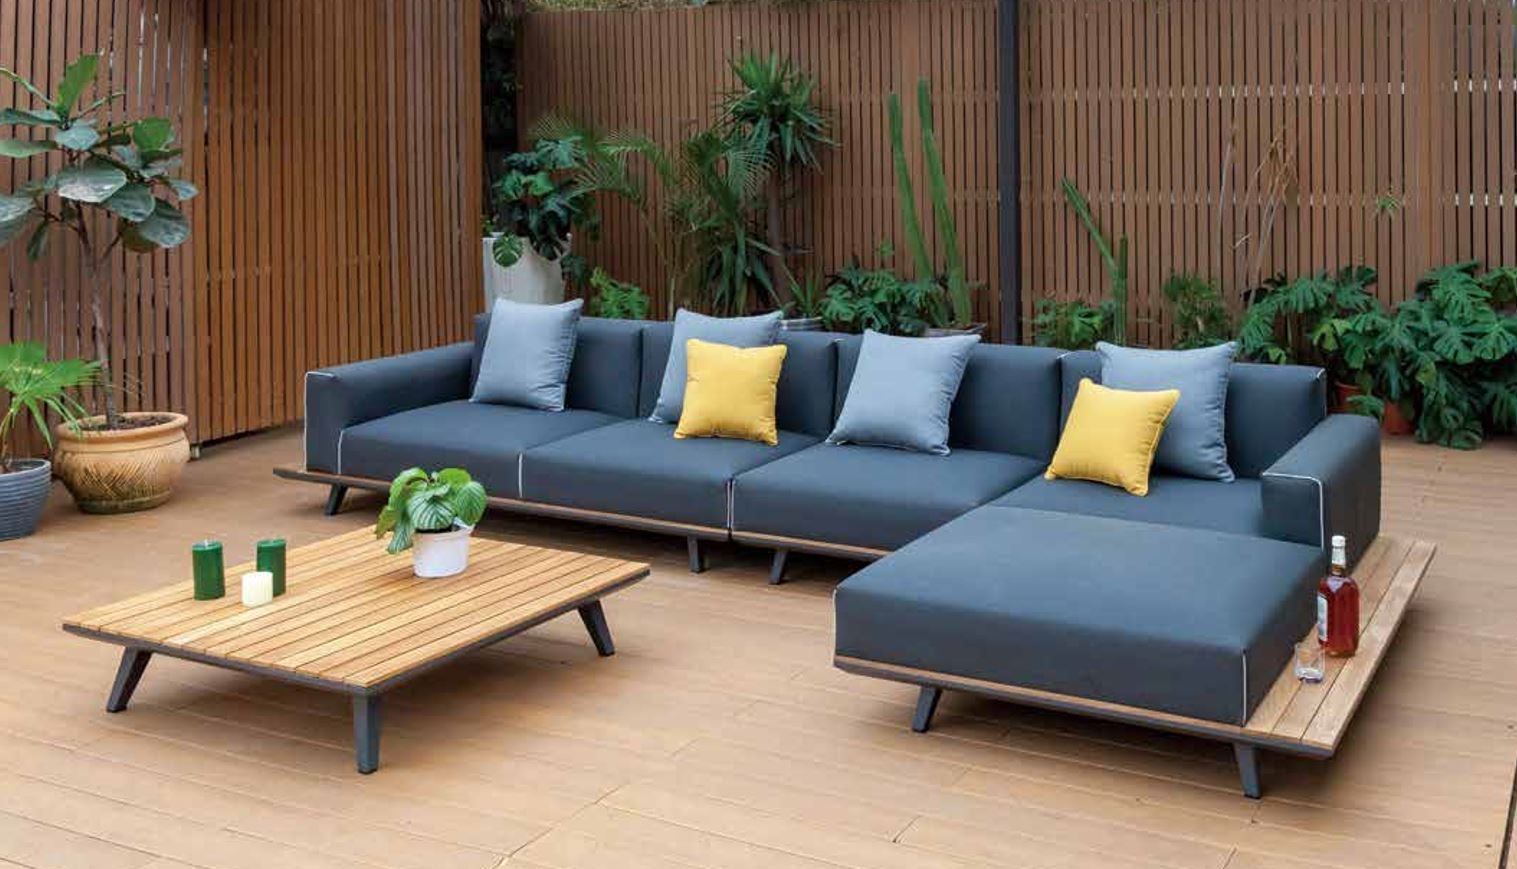 Beautiful outdoor sofa set from Mondecasa LOFT Collection